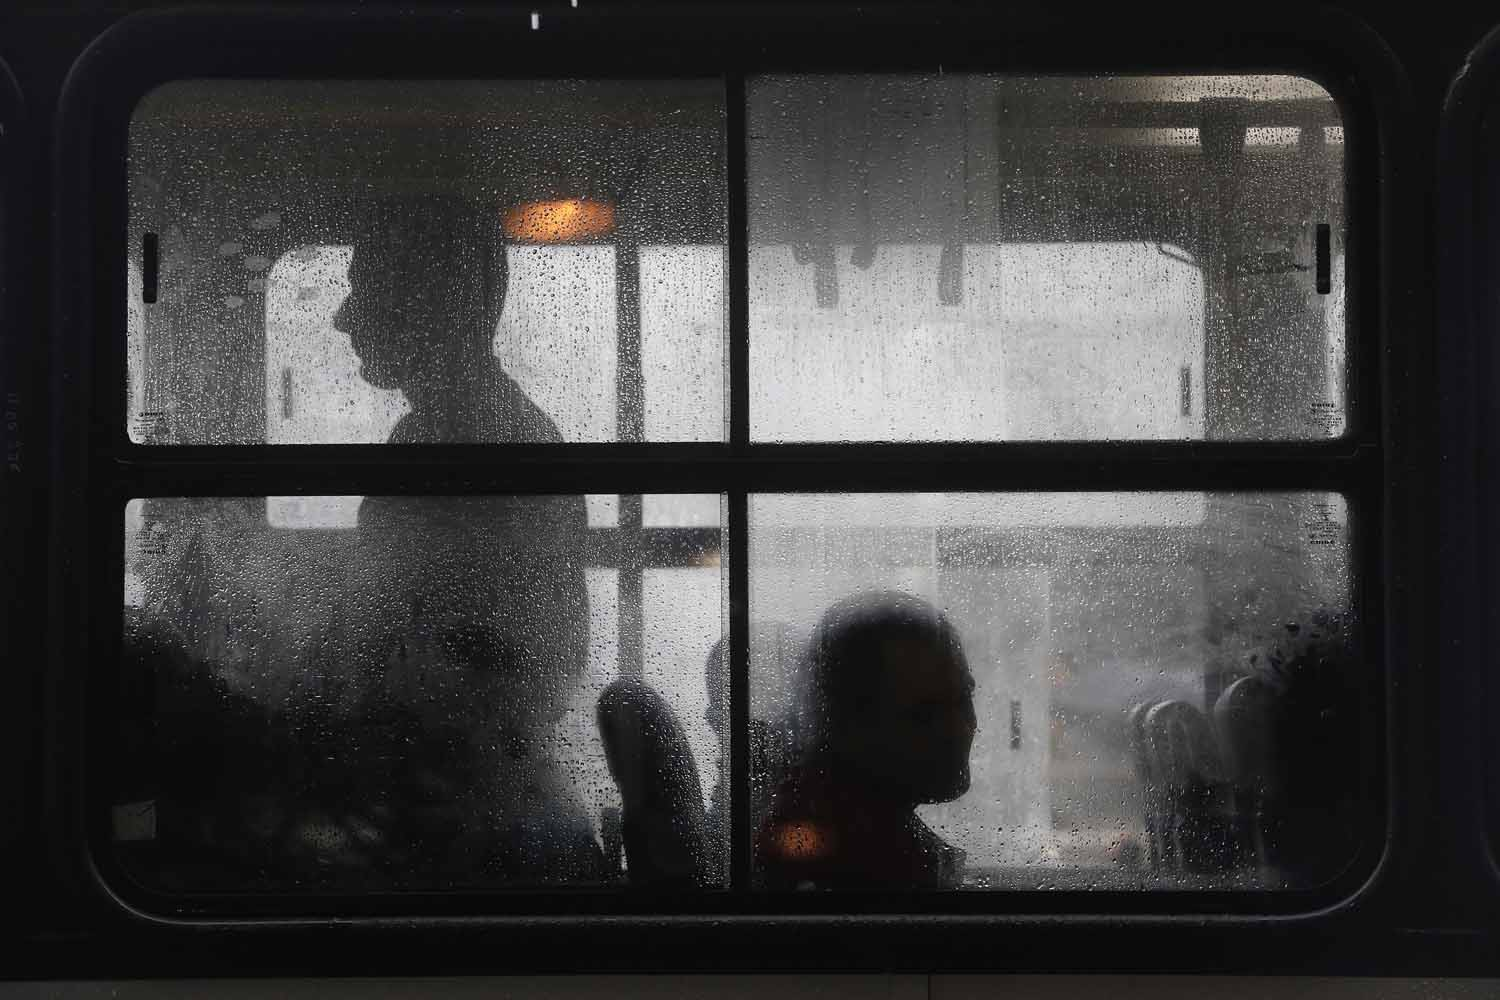 May 28, 2014. Commuters take their seats in one of the few buses operating during a 24-hour bus strike in Rio de Janeiro, Brazil.